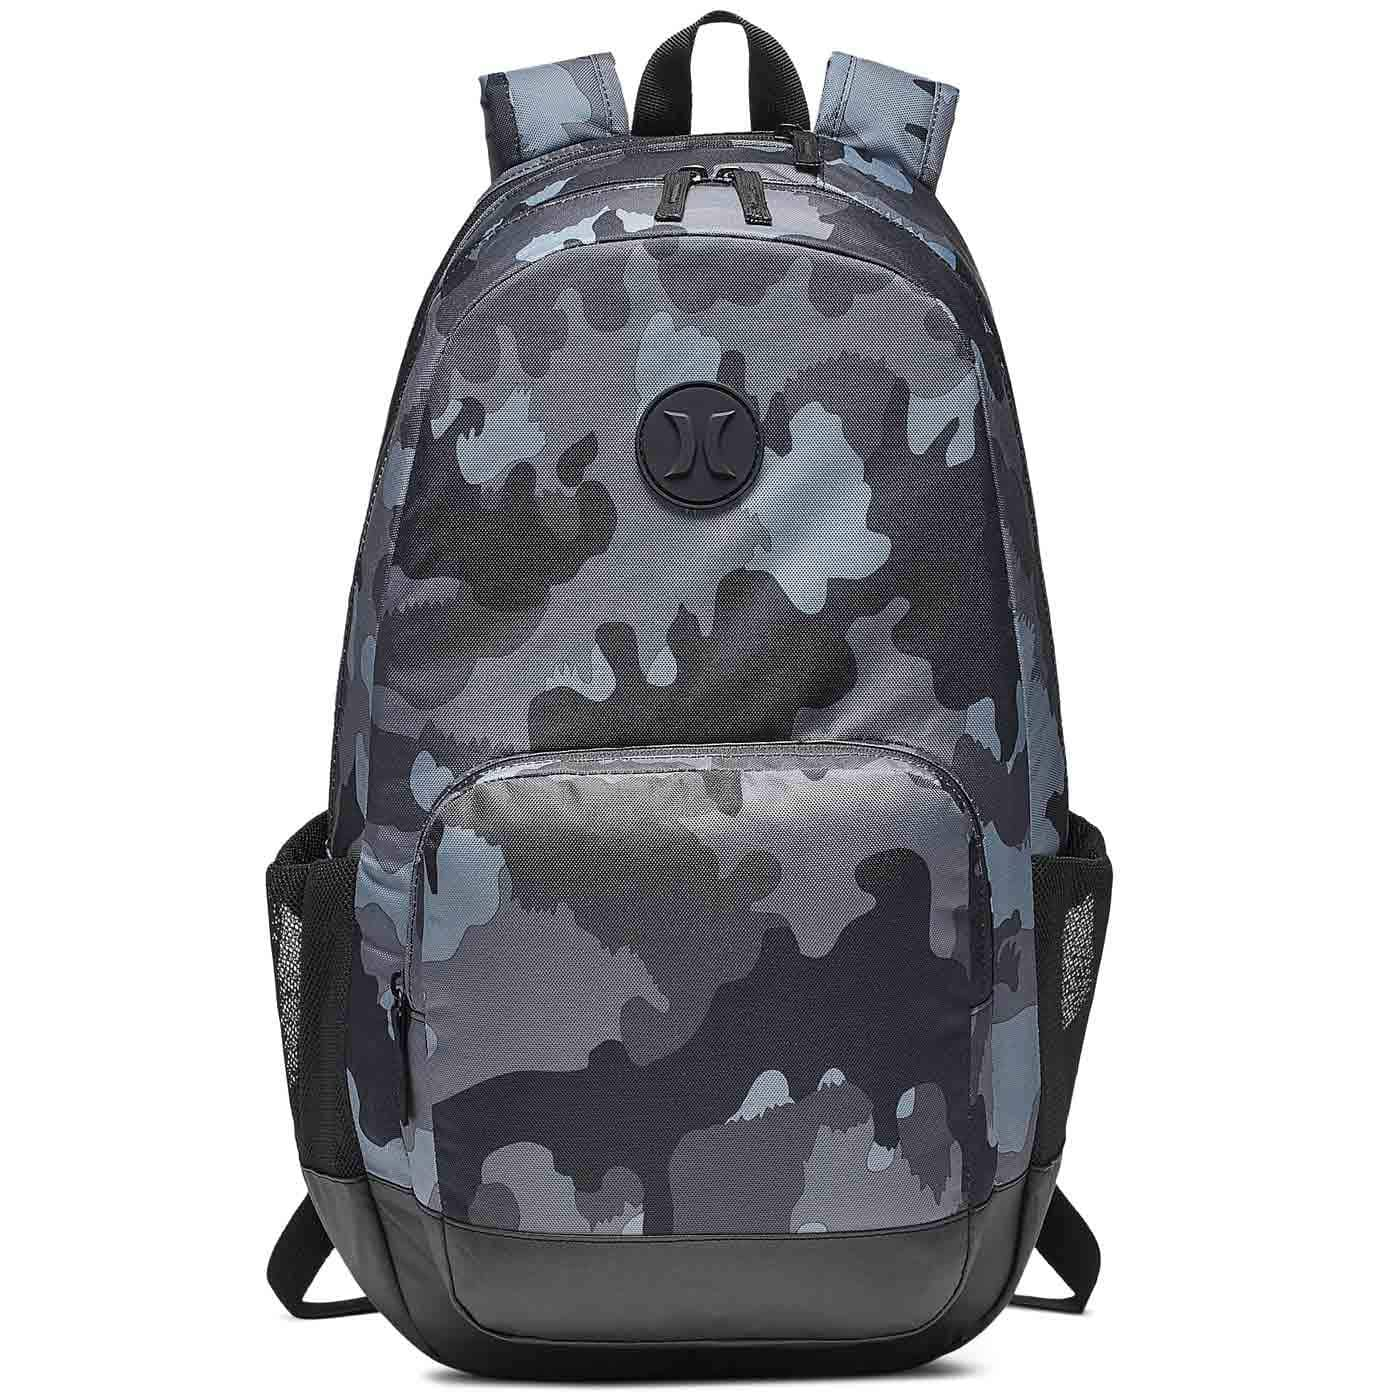 Hurley Renegade II Printed Backpack Camo Green O/S (one size)